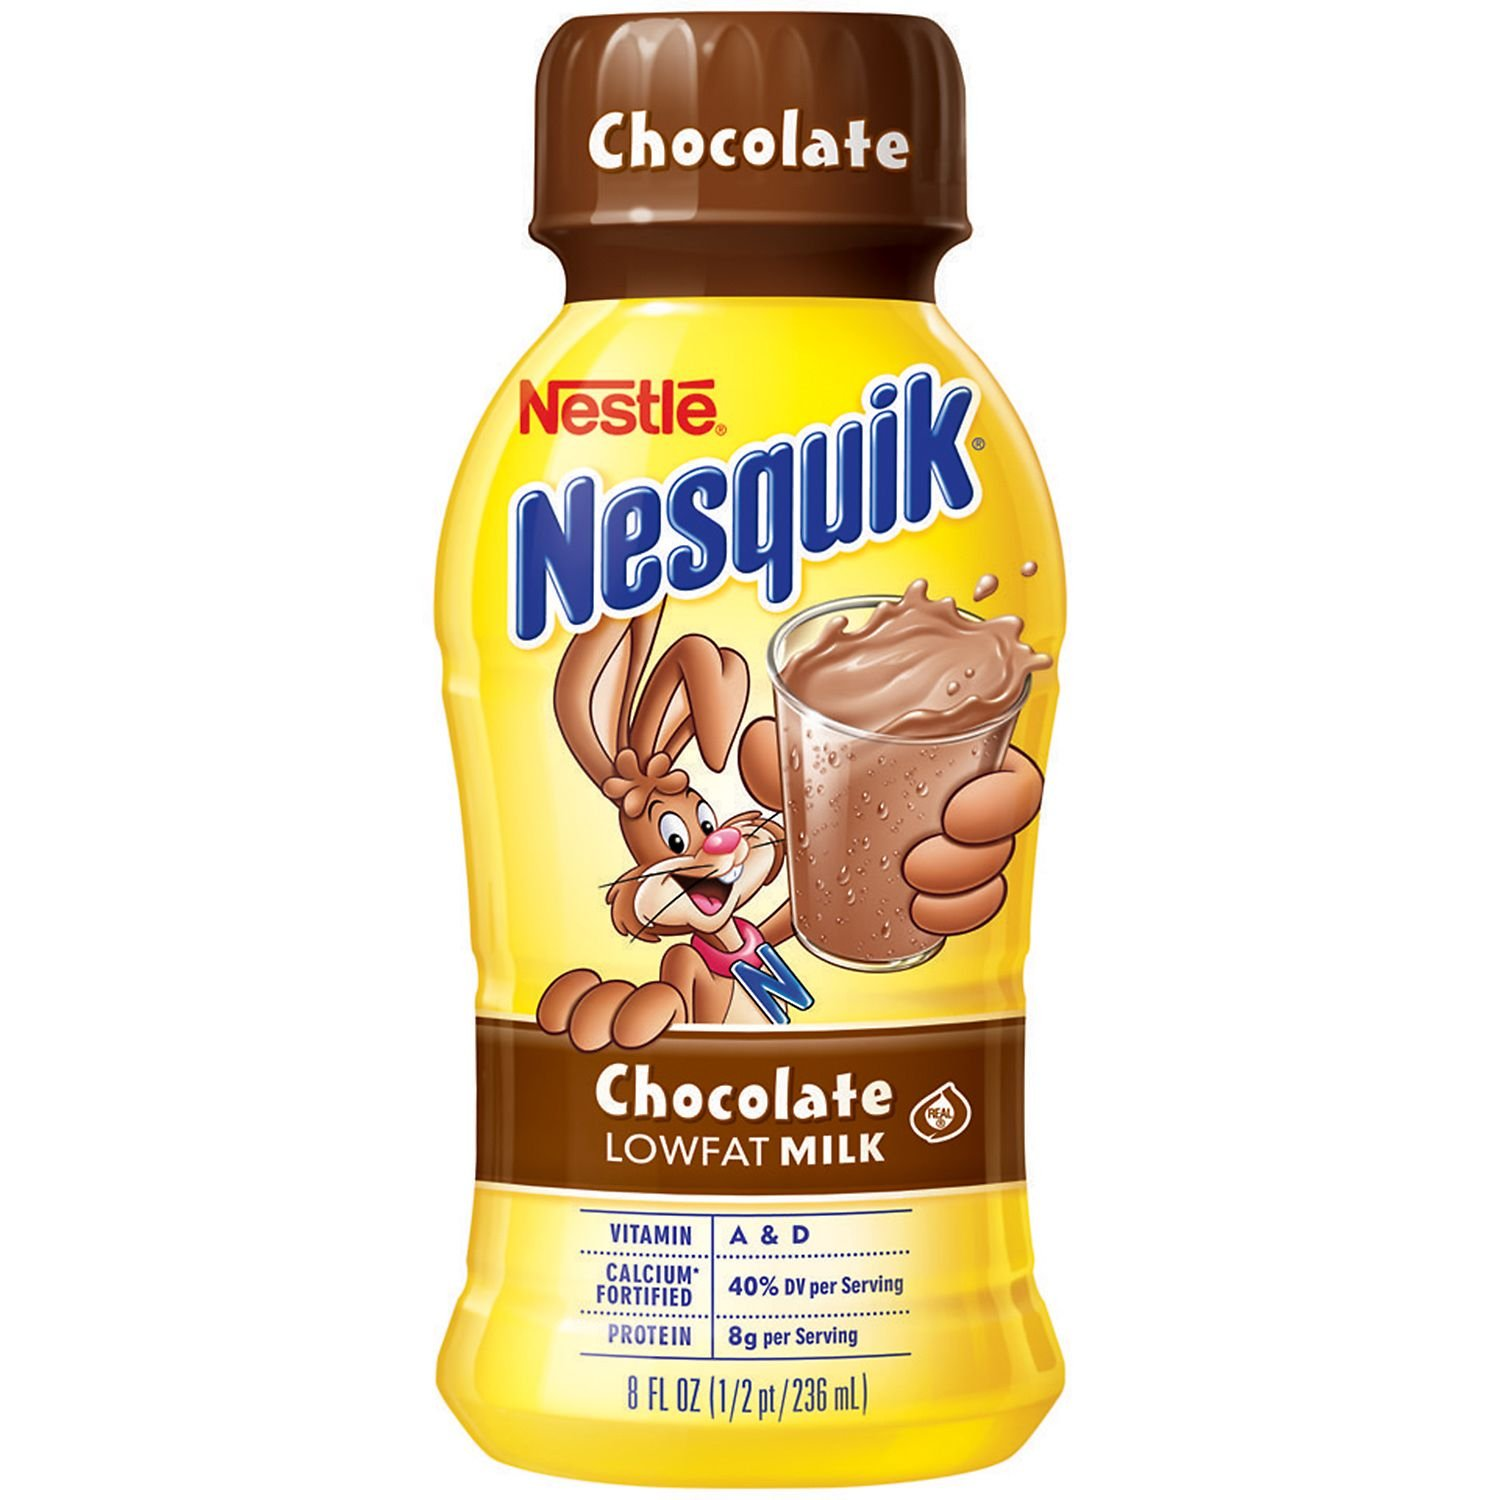 Nestle nesquik chocolate lowfat milk 158 oz bottles amazon nestle nesquik chocolate lowfat milk 158 oz bottles amazon grocery gourmet food sciox Choice Image